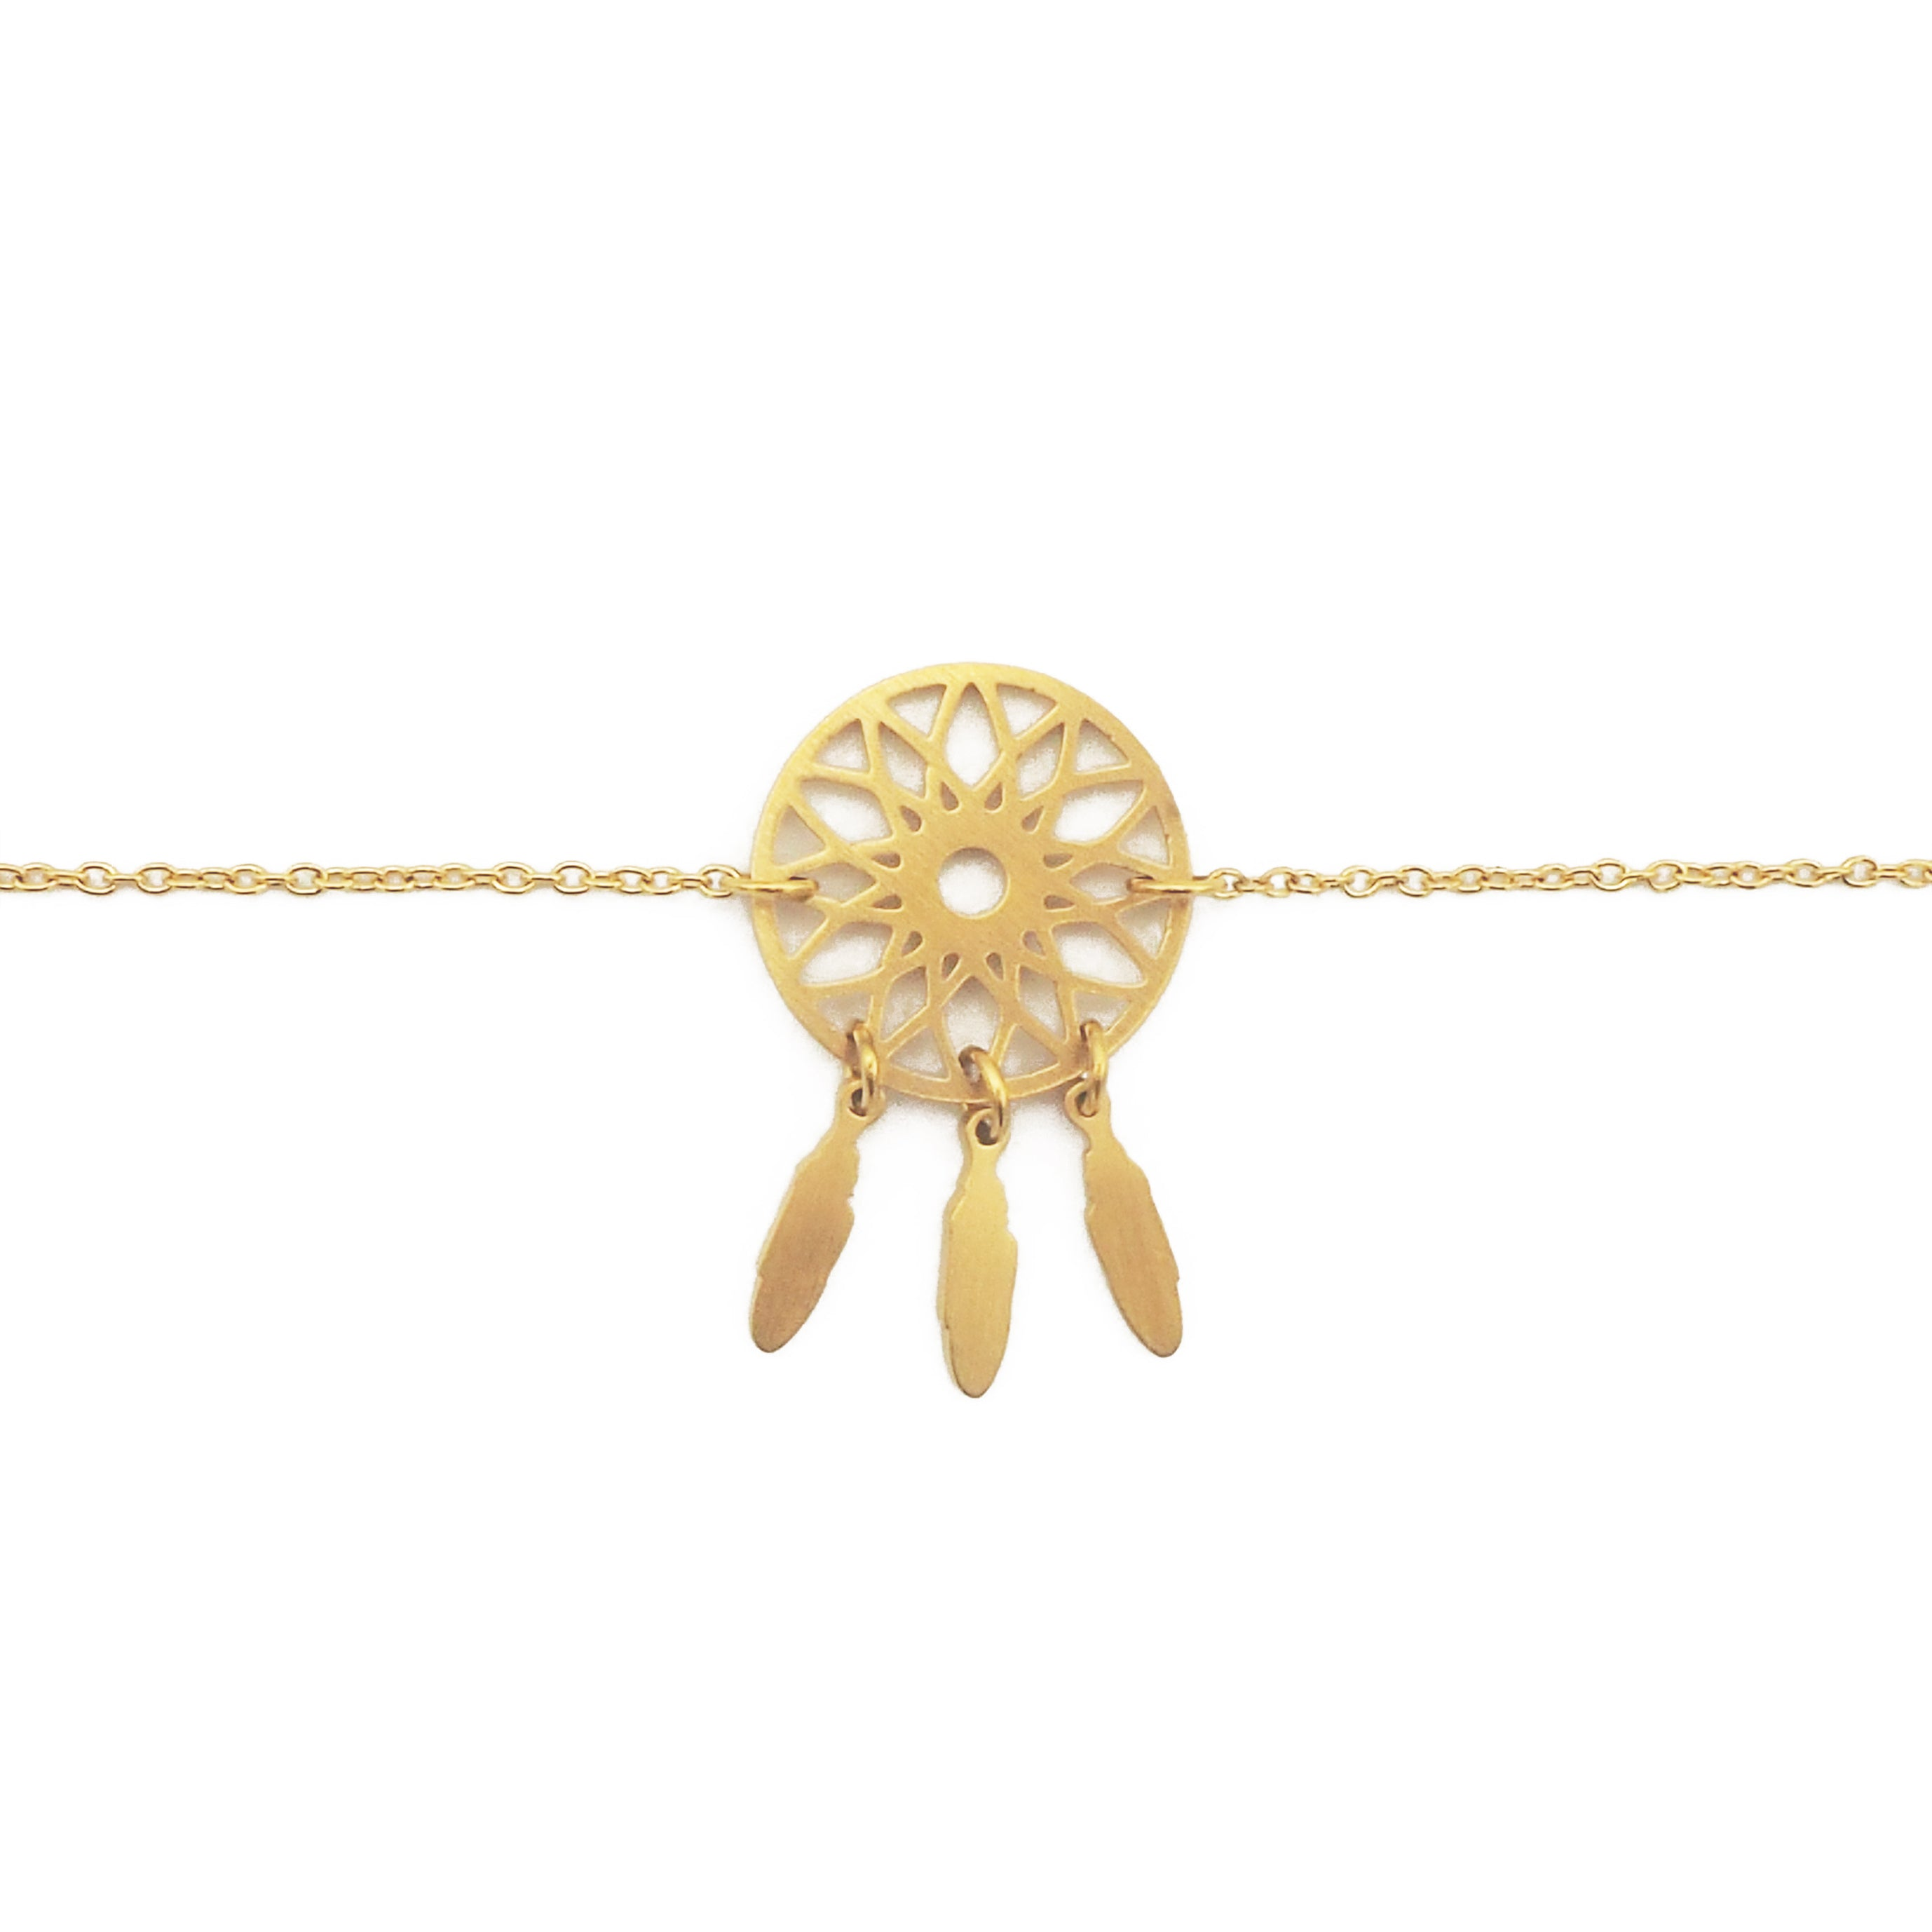 Dreamcatcher armbånd - Gold fra Farmhousedesign.no